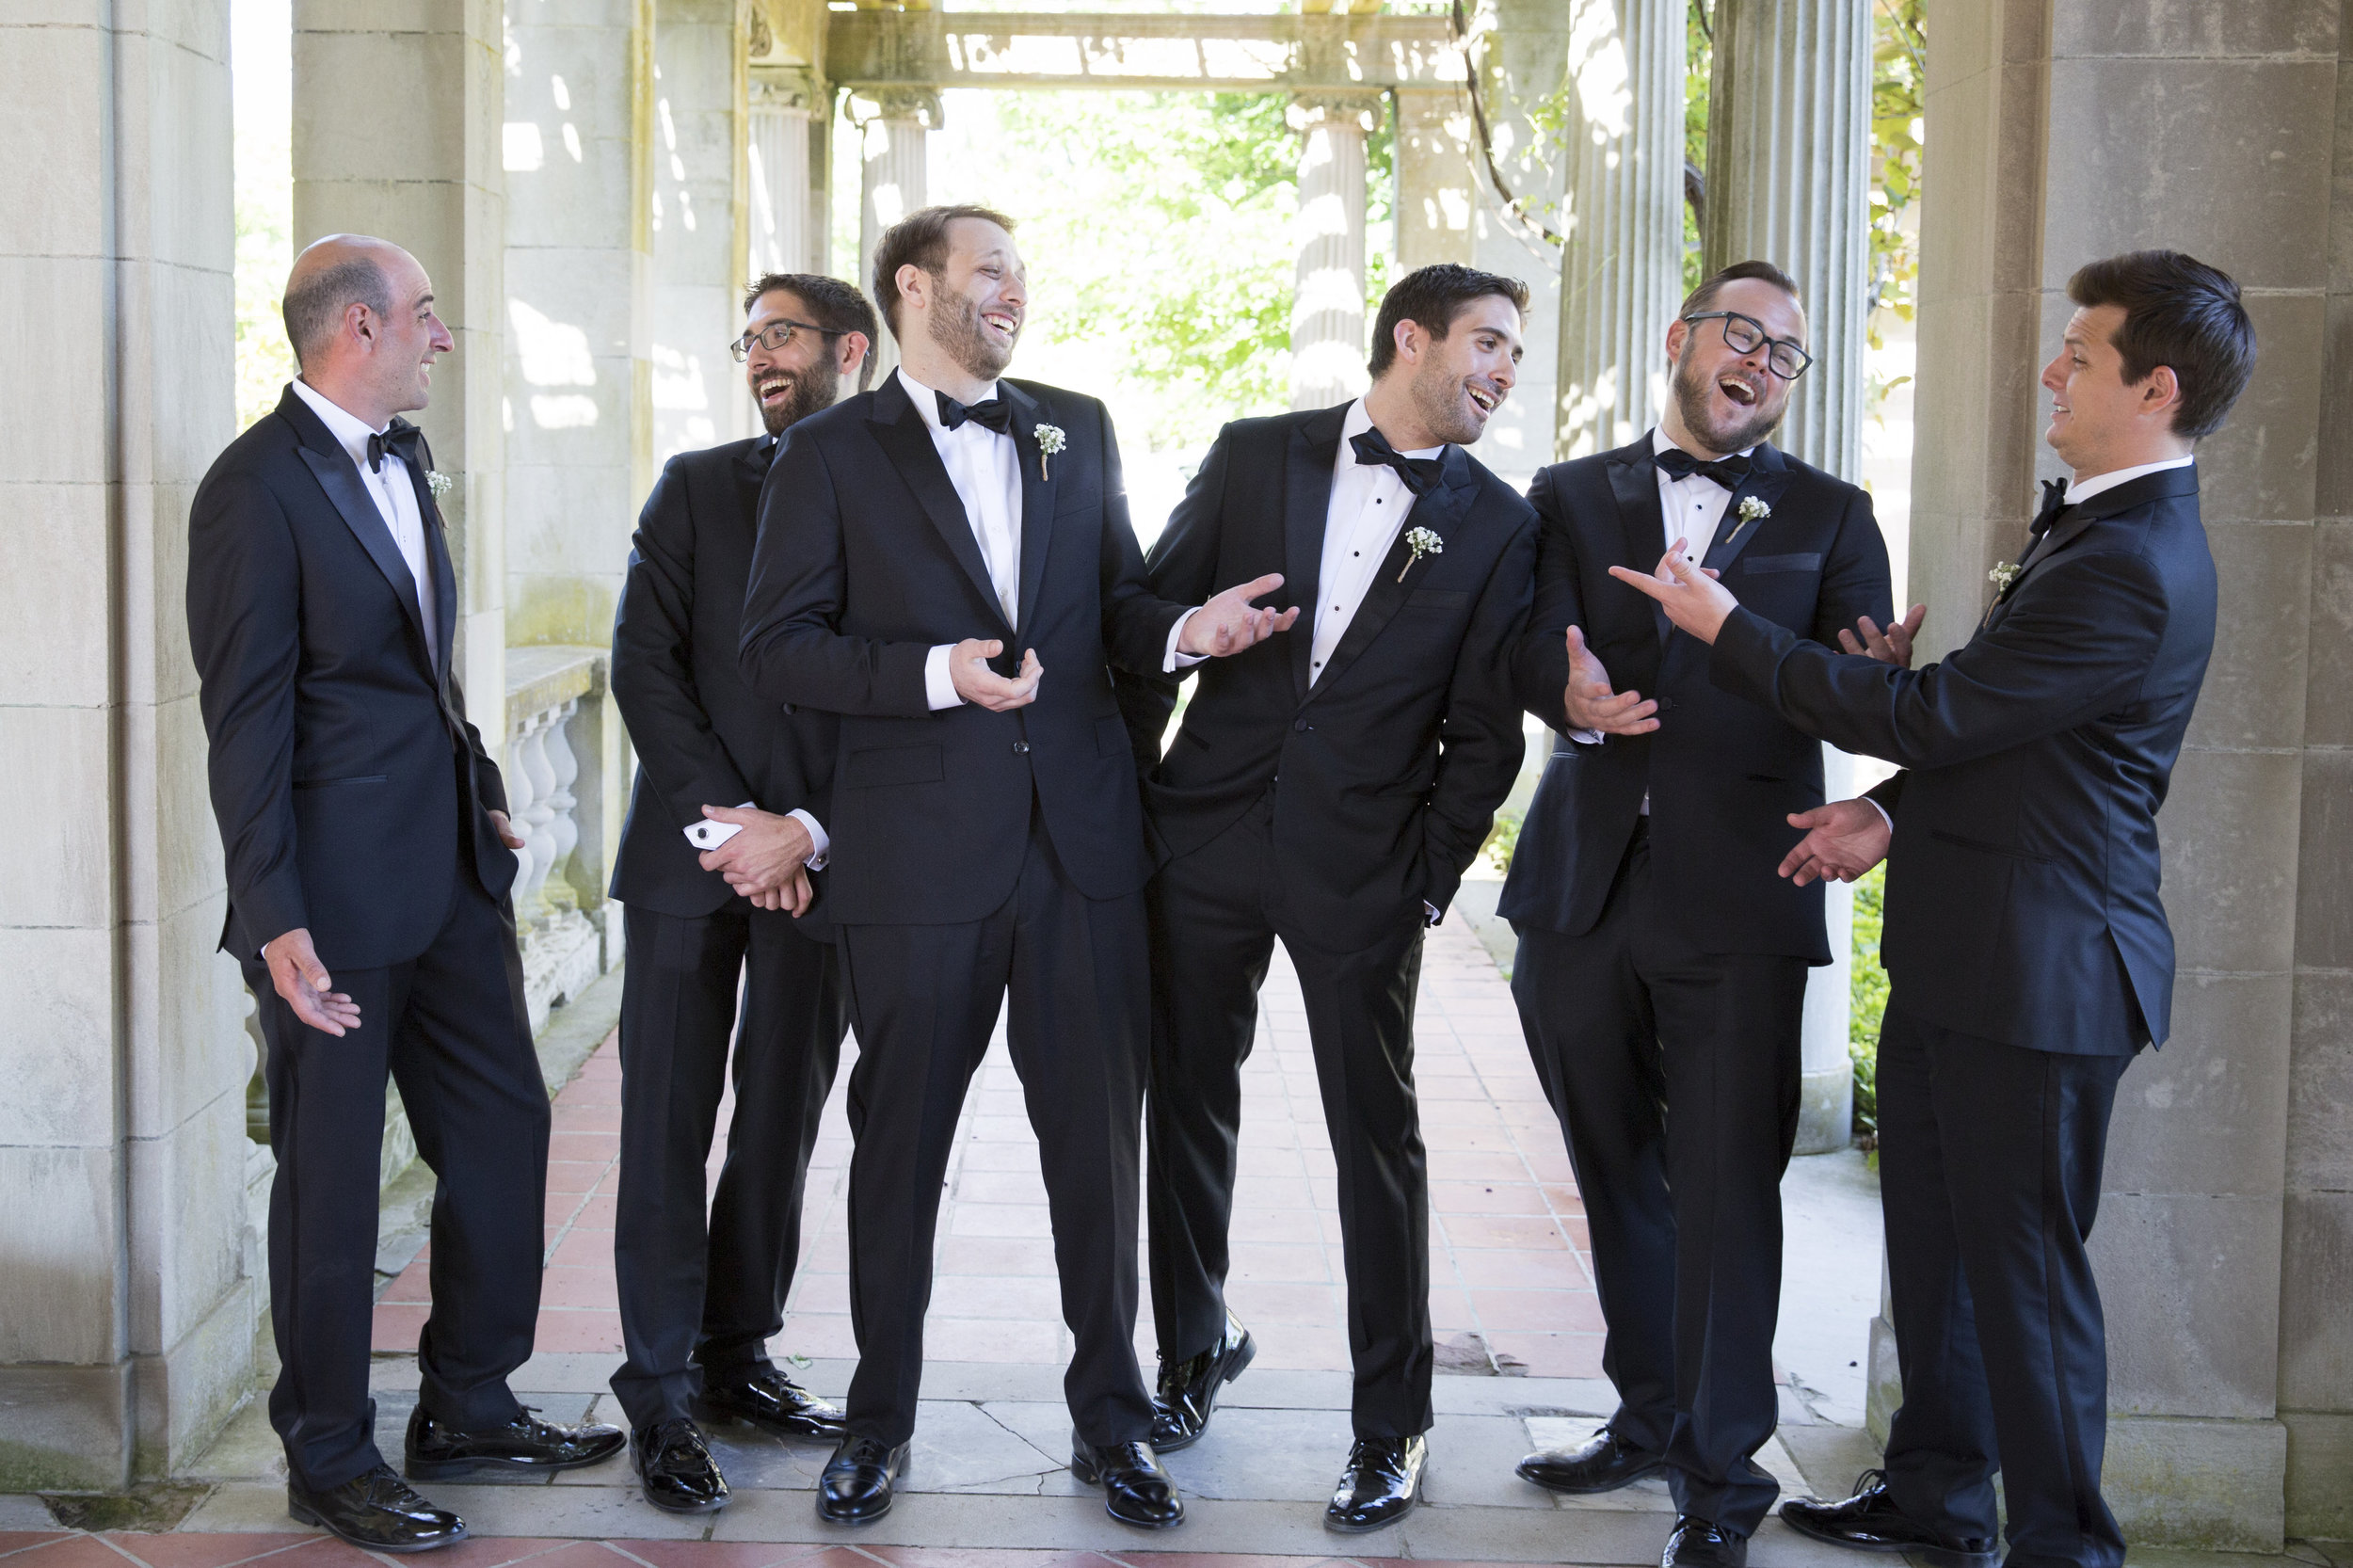 CT Wedding Eolia Mansion Amy Champagne Events Groomsmen